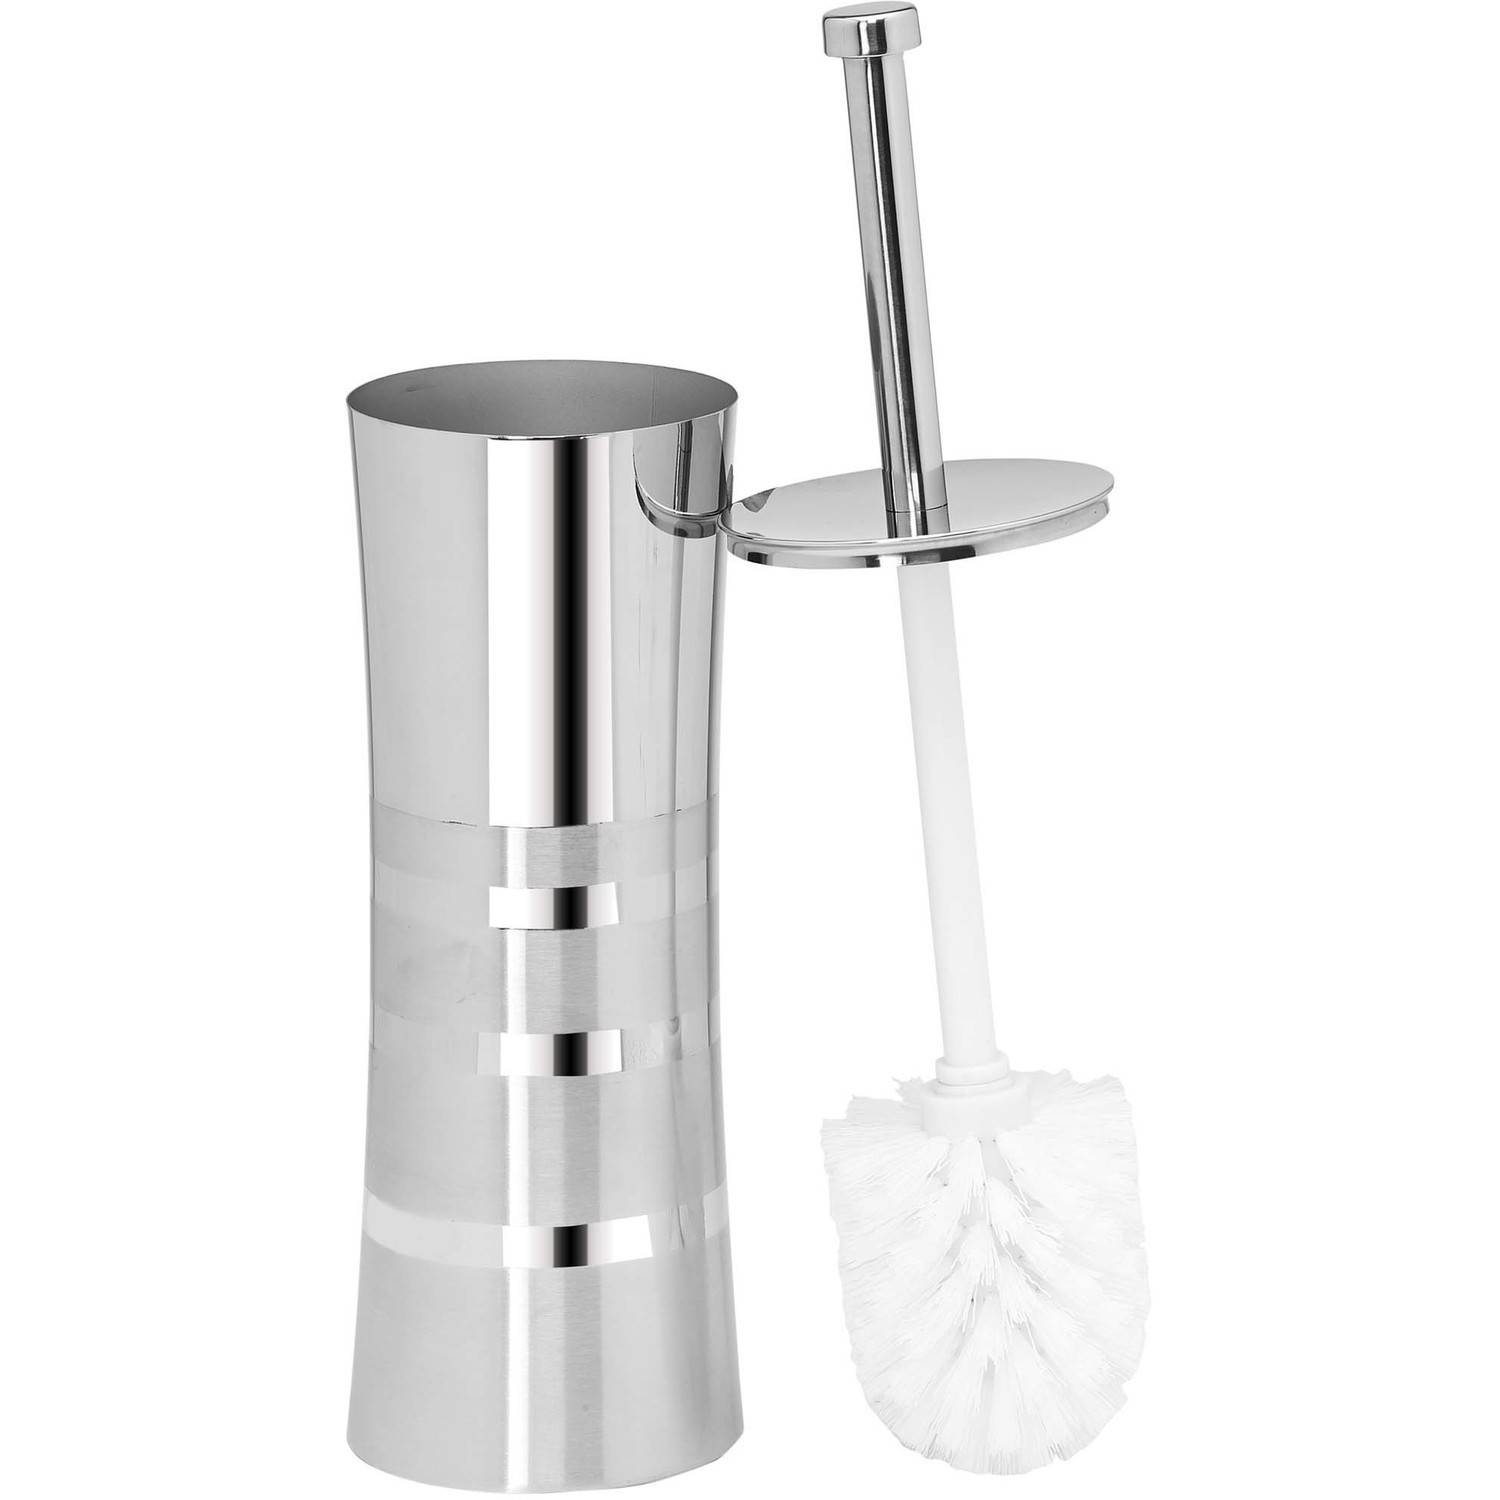 Bath Bliss Stainless Steel Toilet Brush with 2-Tone Curved Body by Kennedy International, INC.